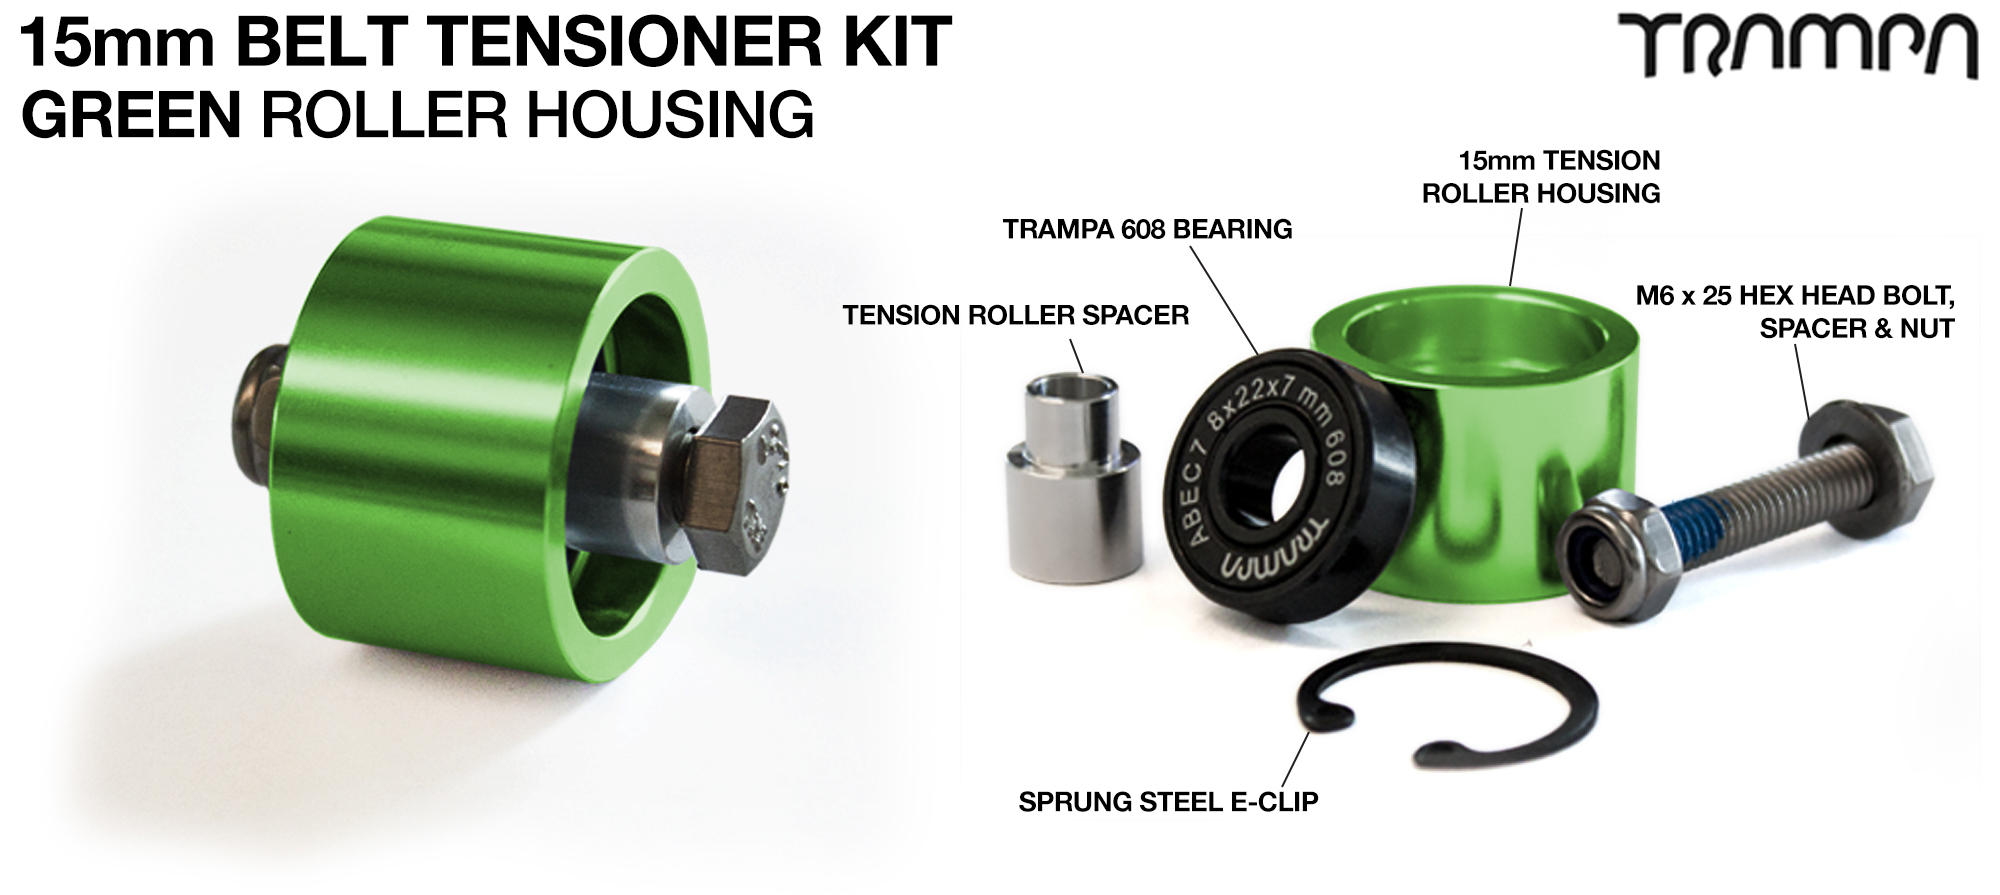 OPEN BELT DRIVE Belt Tensioning System for 15mm Belts - GREEN